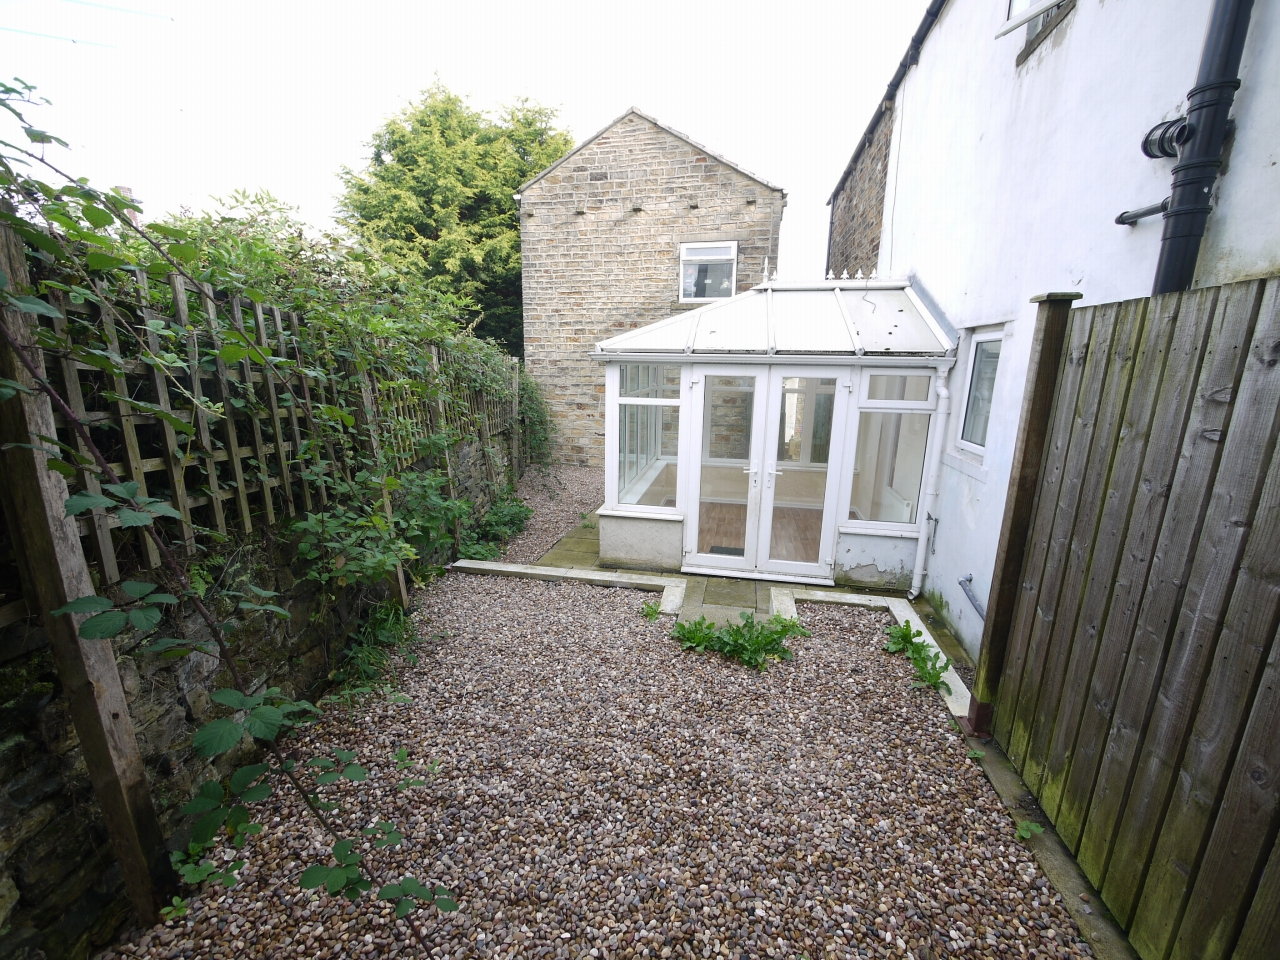 2 bedroom mid terraced house Let in Huddersfield - Photograph 7.